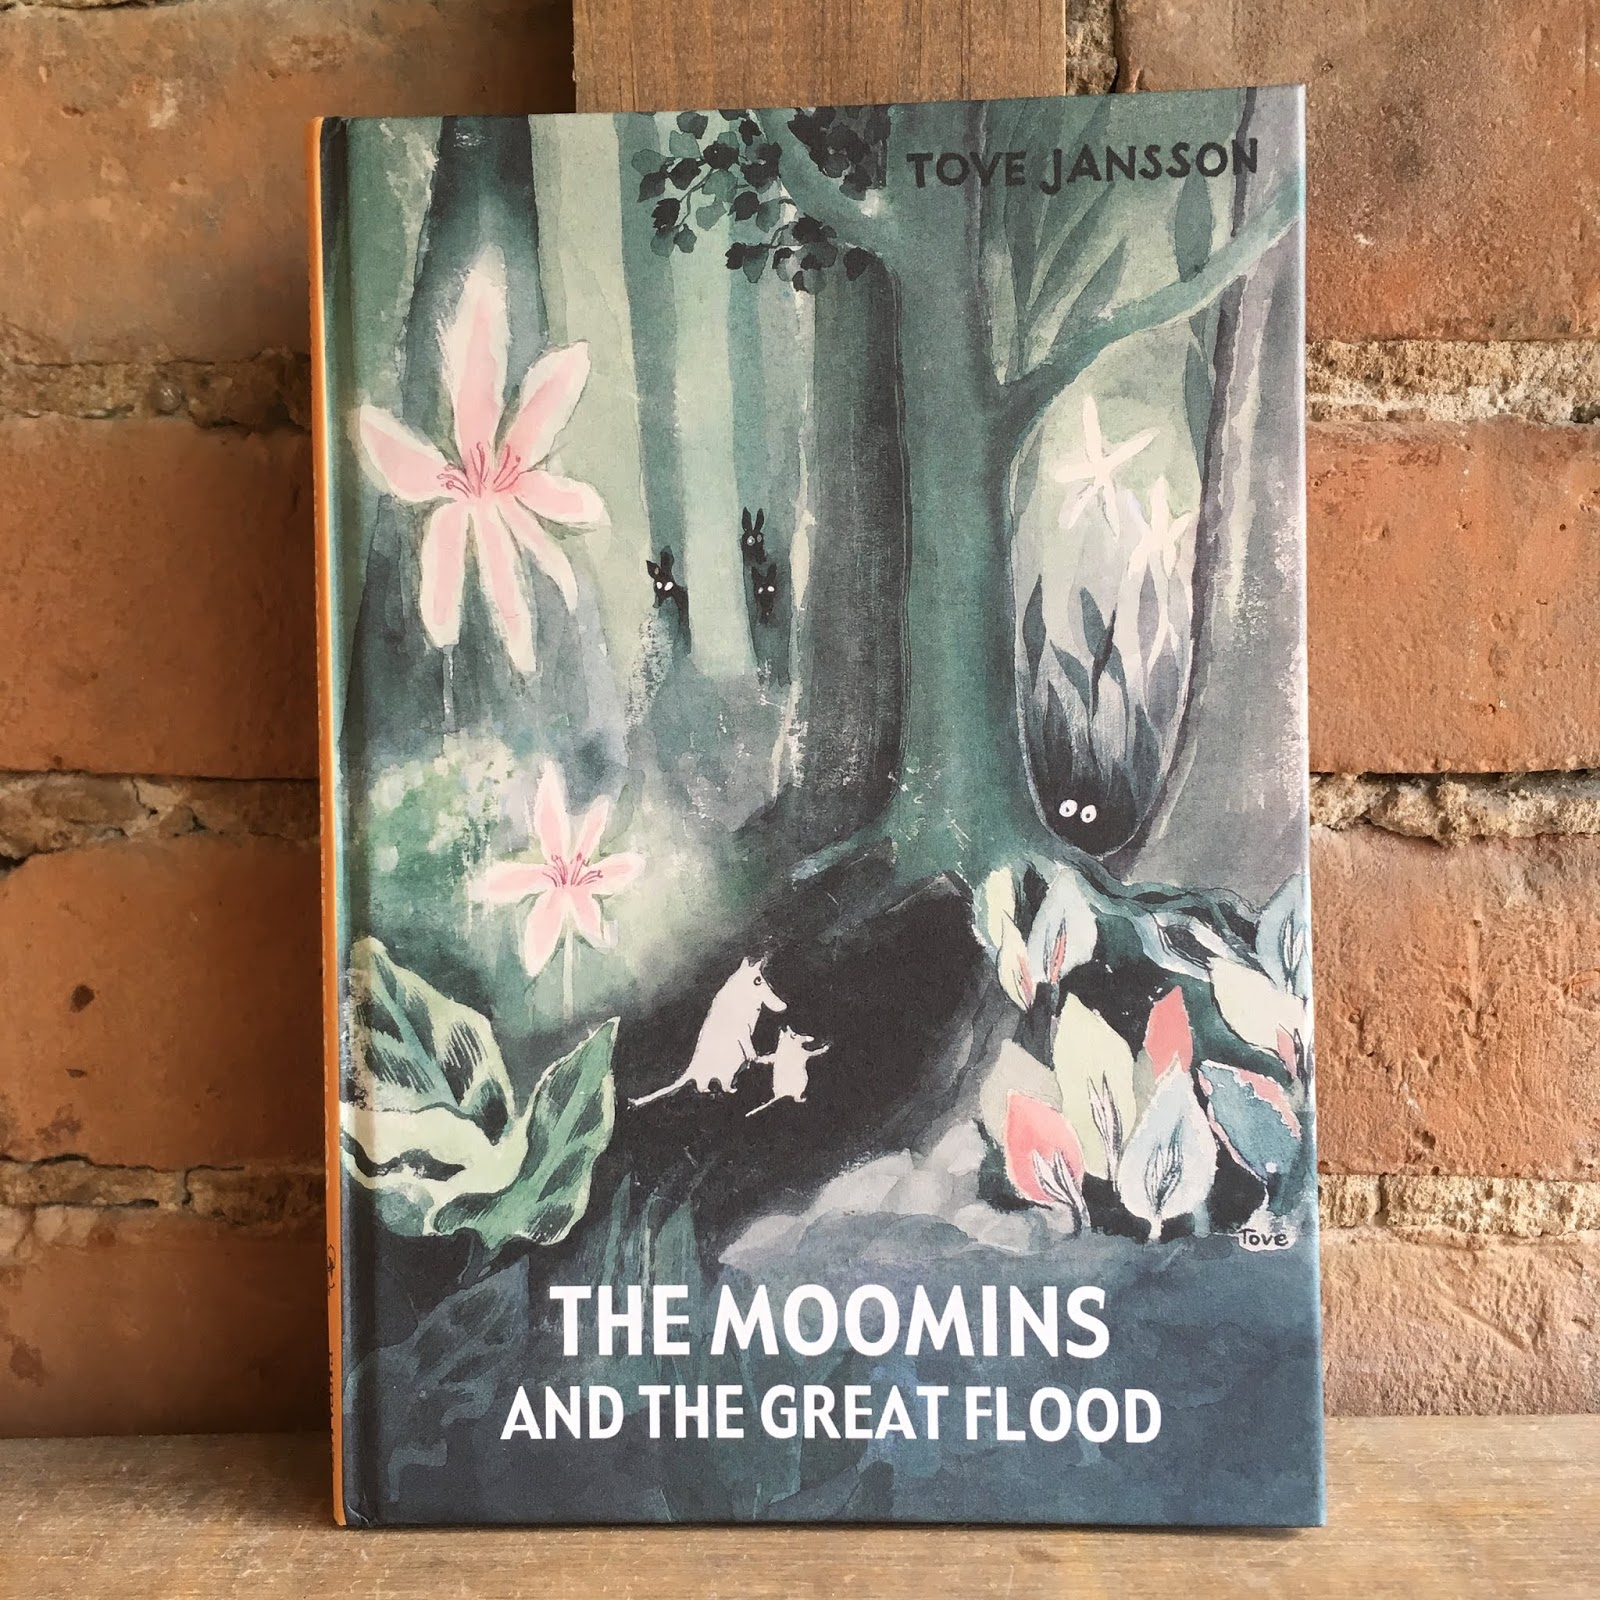 And the pdf moomins flood the great